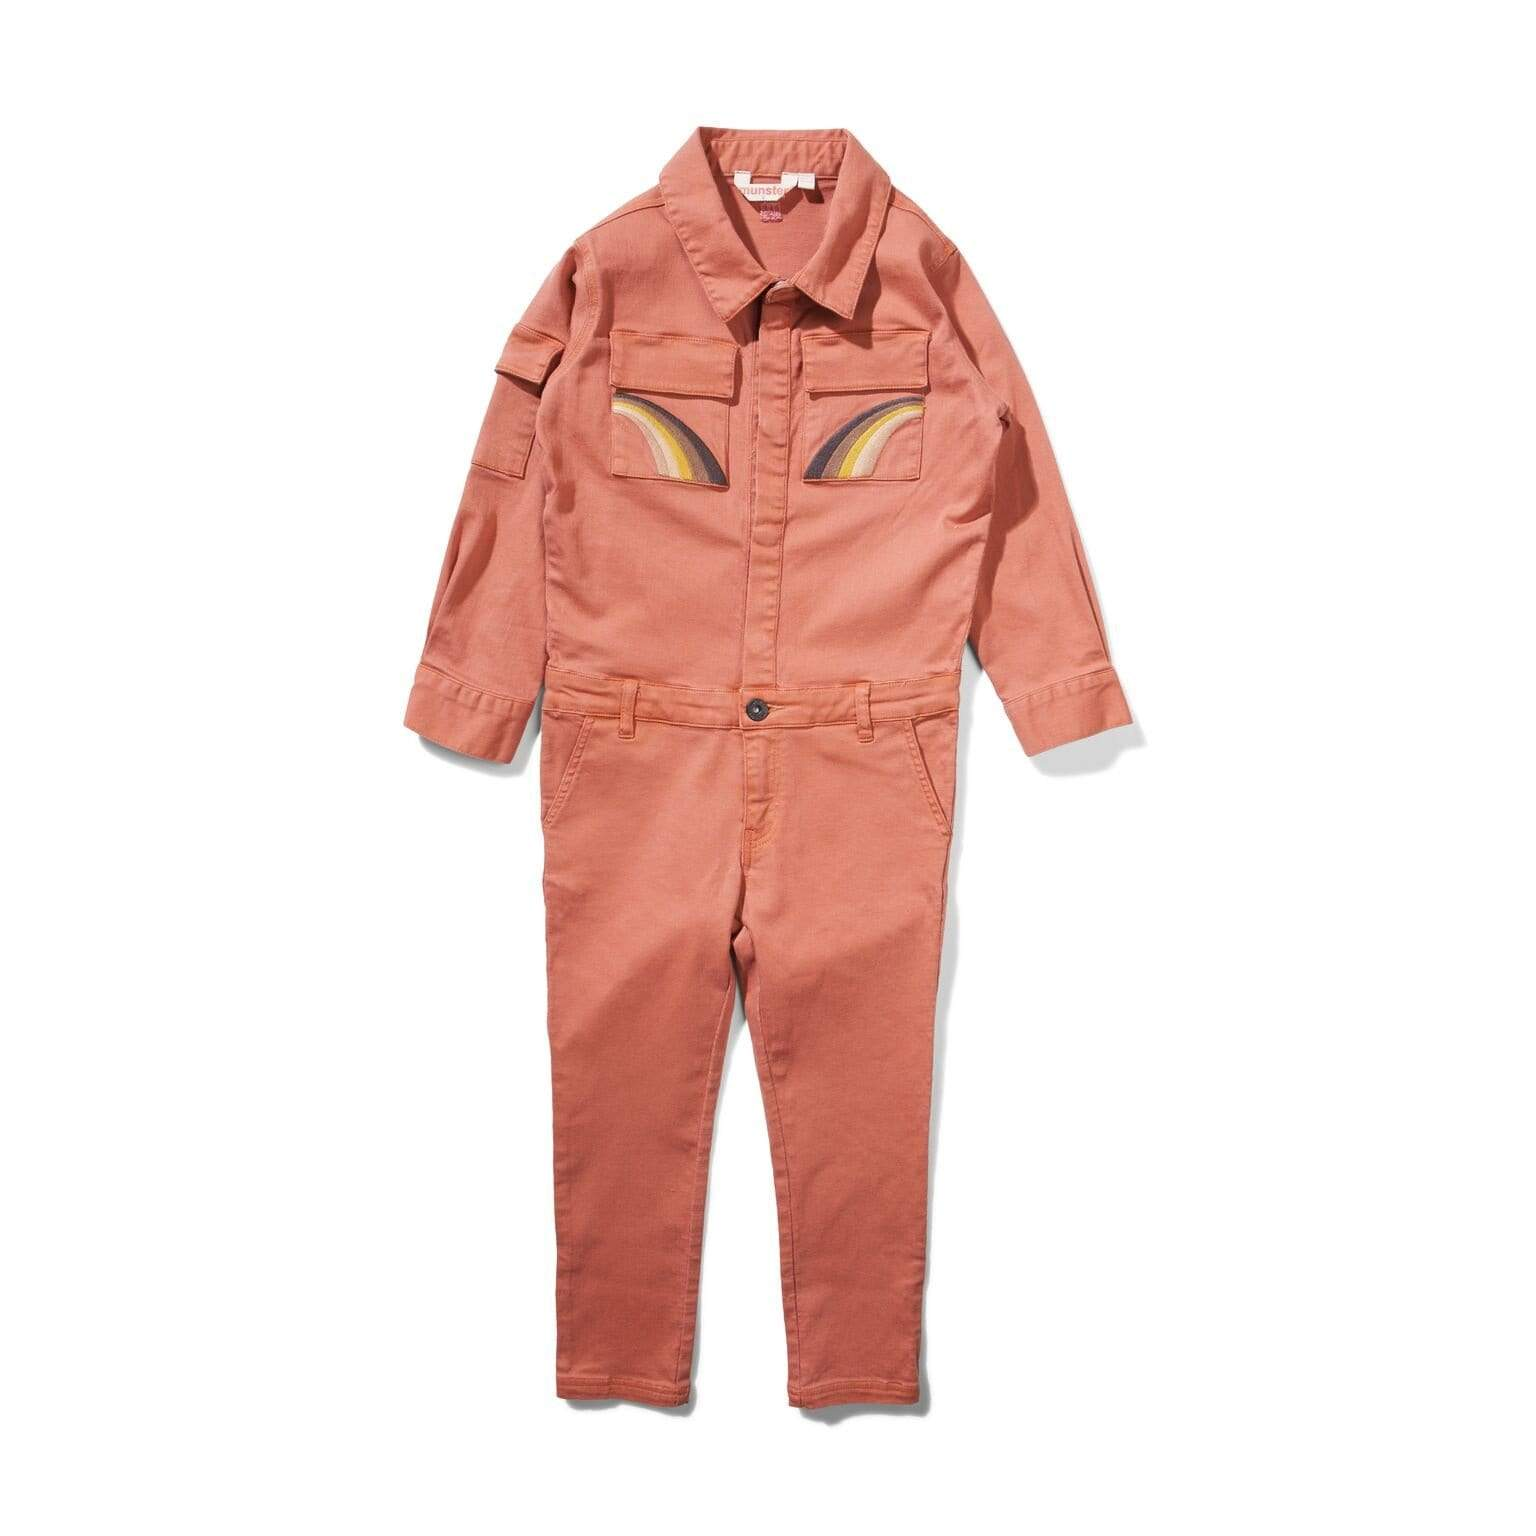 Munster Playsuit & Jumpsuit Pride & Power Jumpsuit - Rust